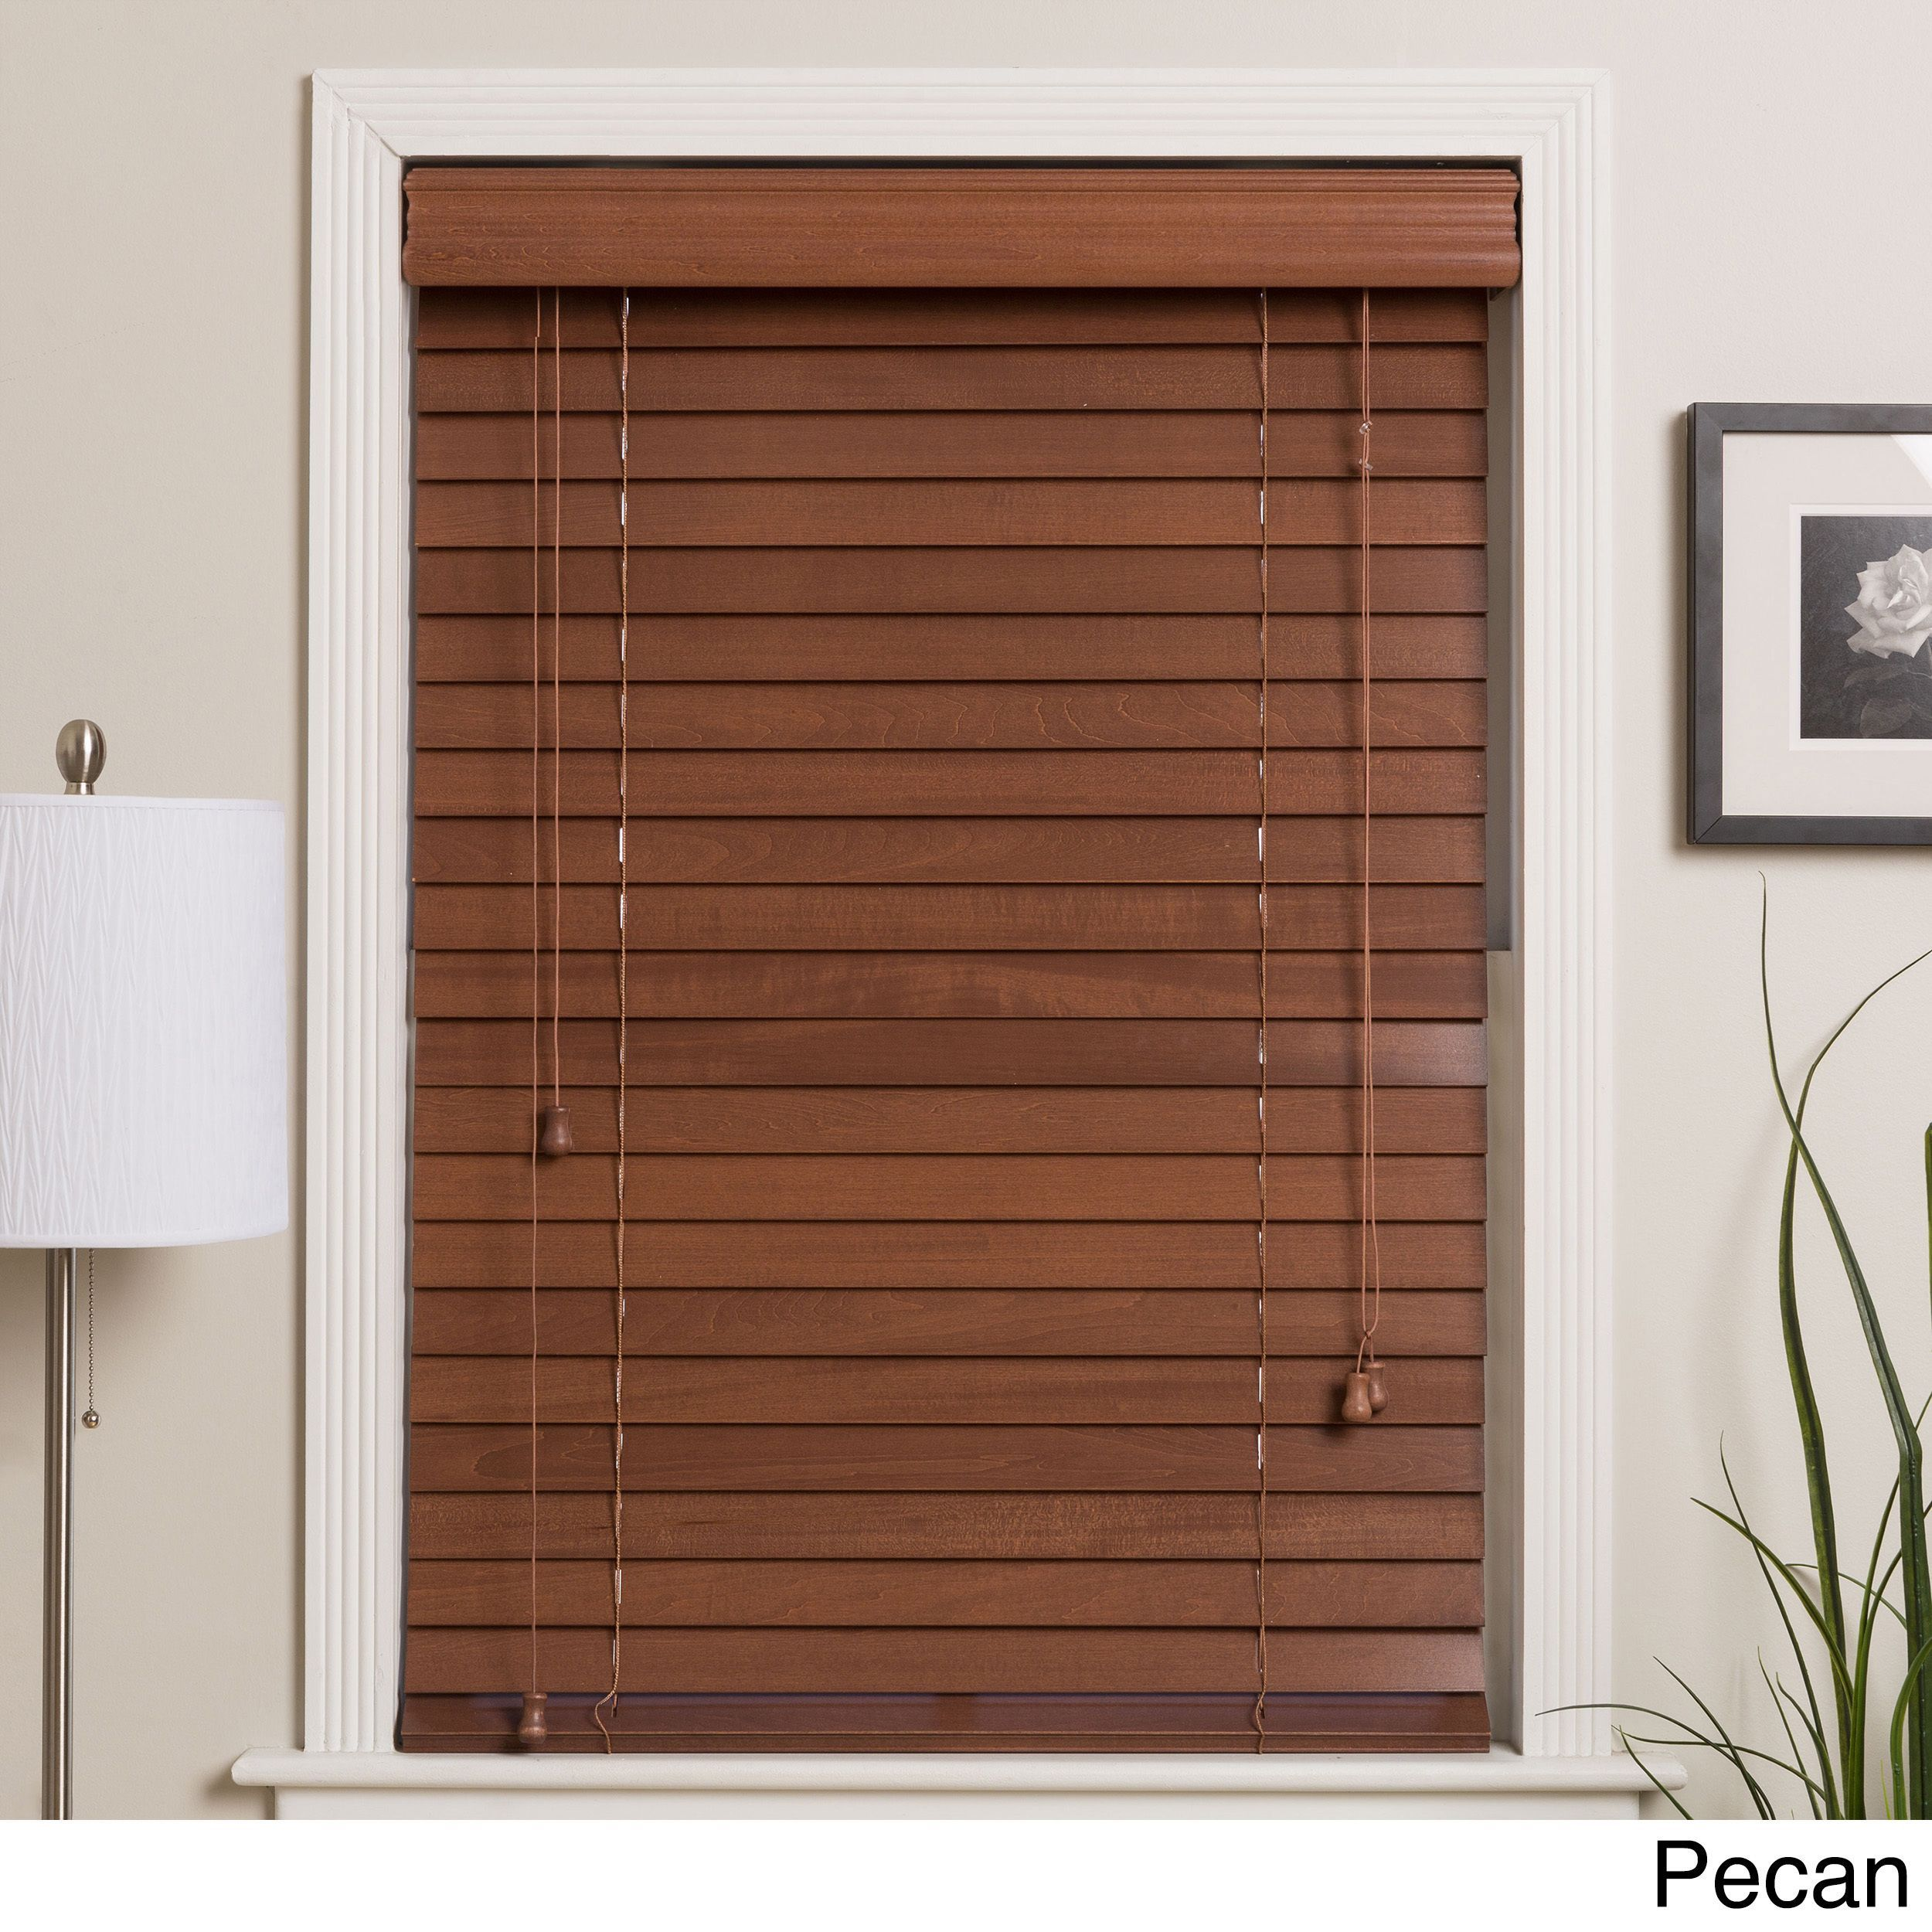 Customized 40 Inch Real Wood Window Blinds Pecan 40x50 Brown Blinds For Windows Wood Windows Faux Wood Blinds